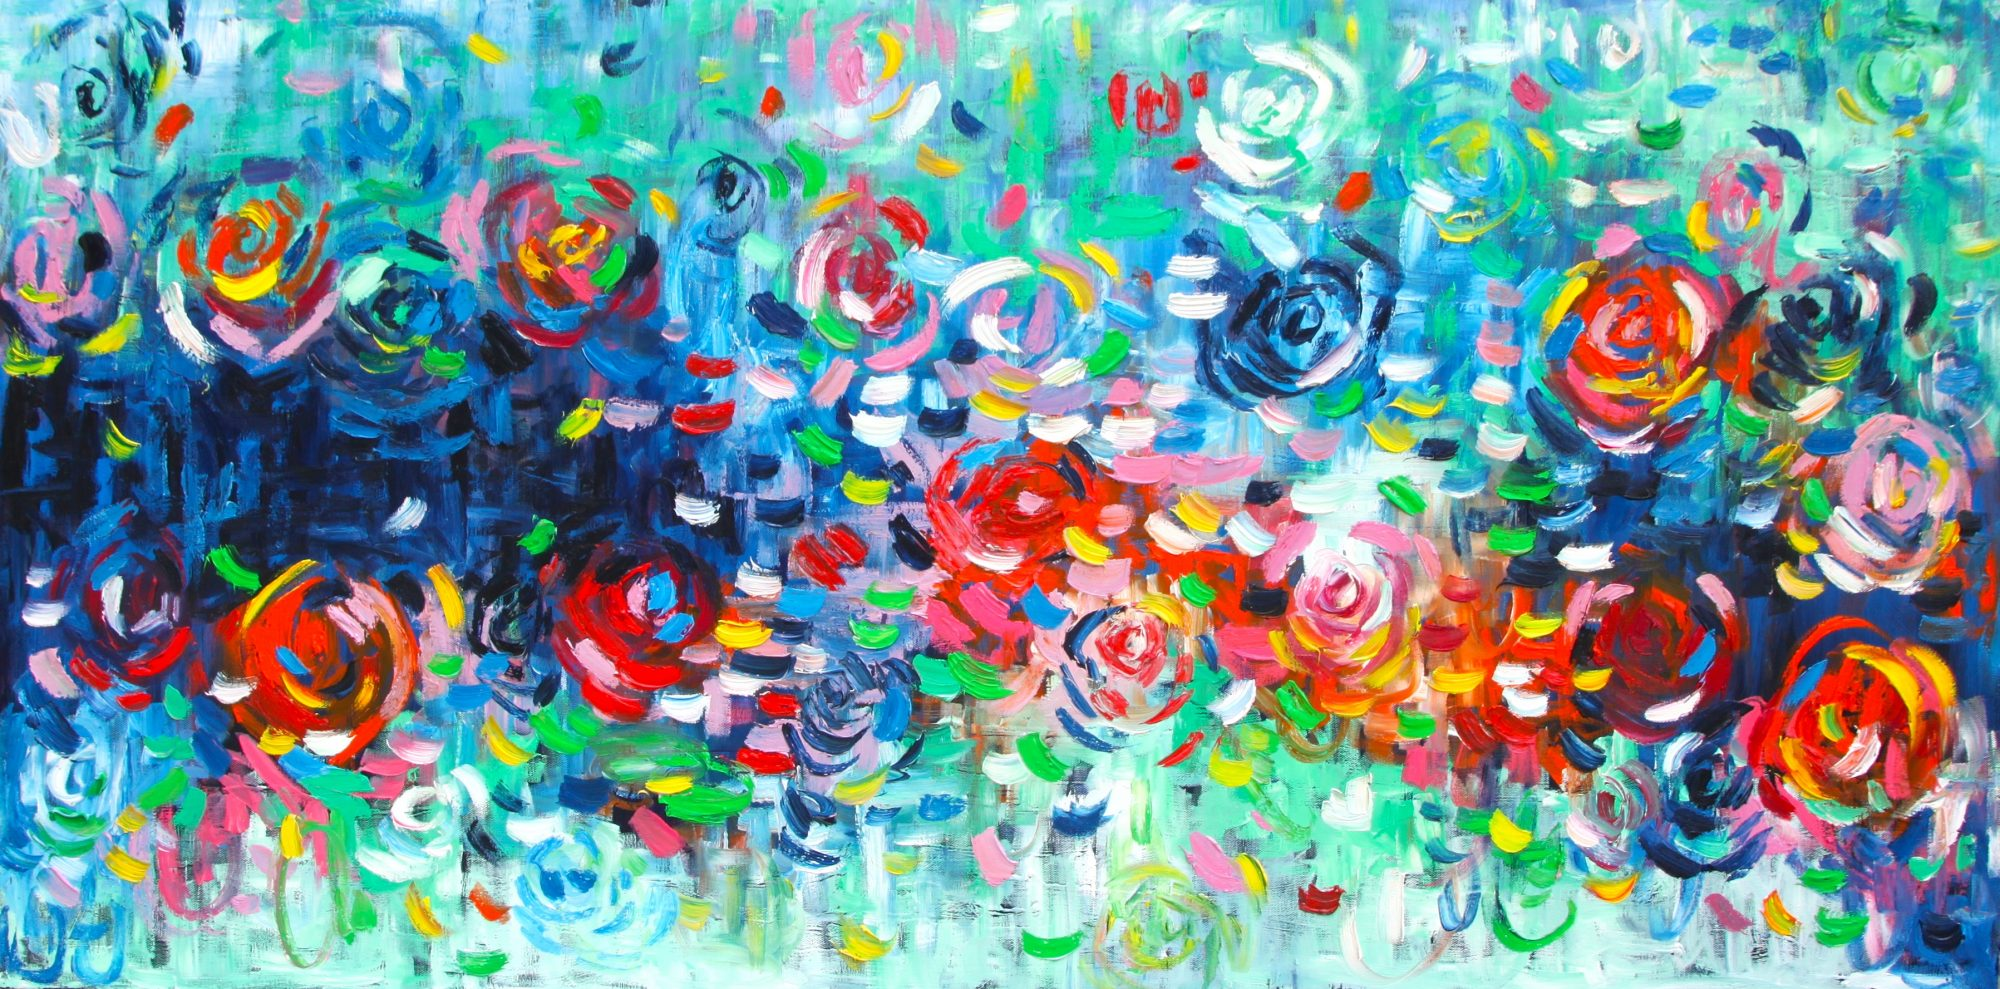 Belinda Nadwie Art Abstract Painting Raindrops On Roses